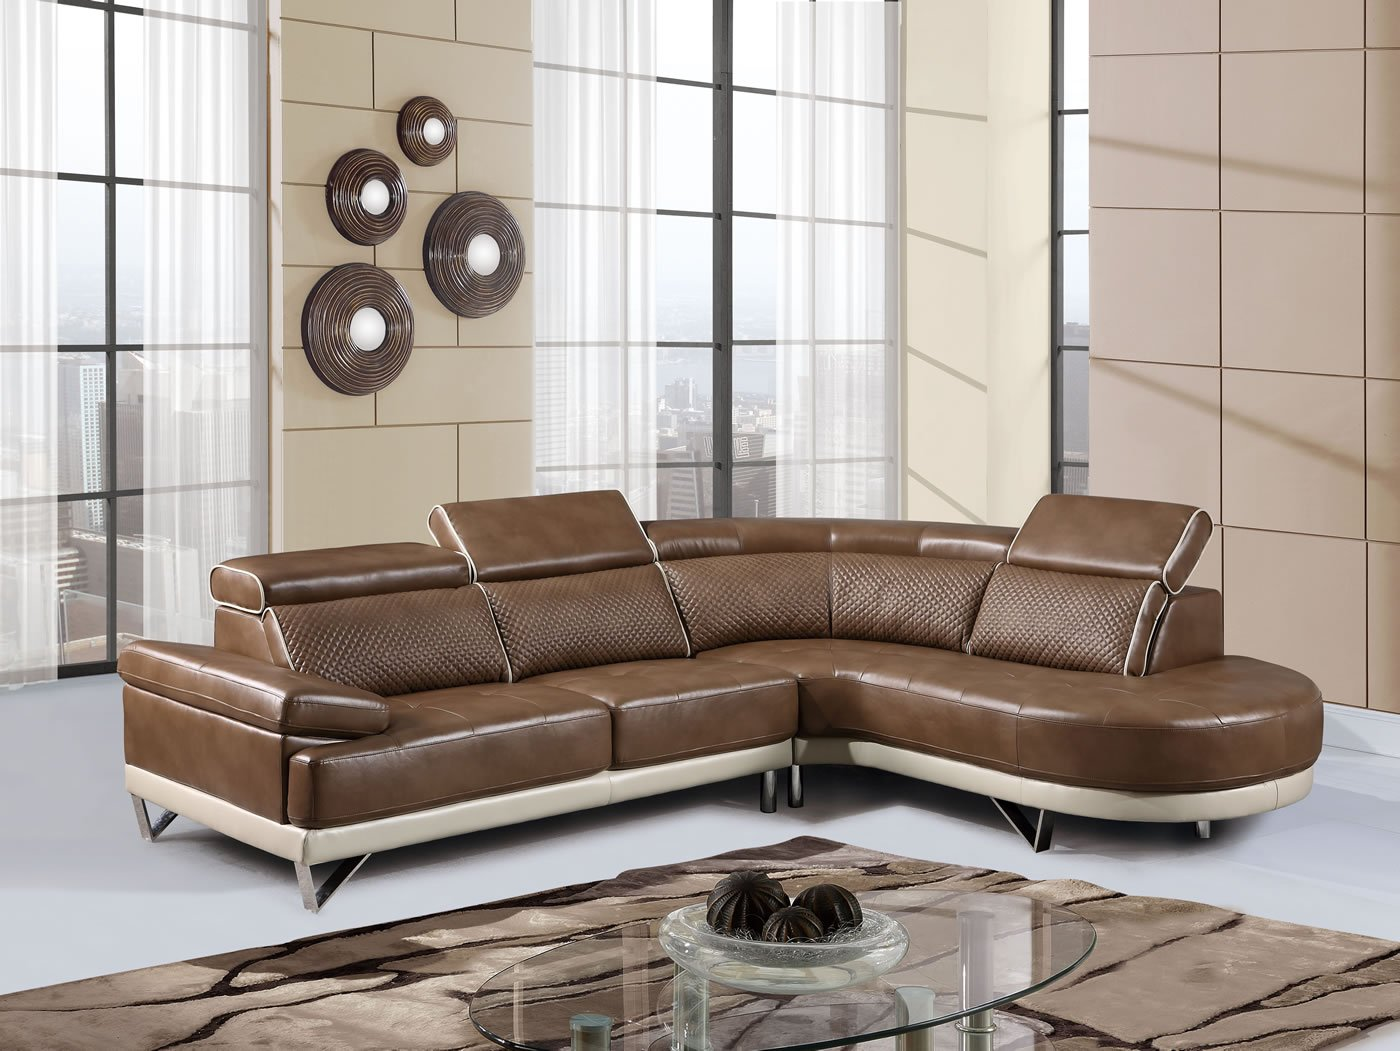 Global Furniture U7730 - SECTIONAL 2-Piece Pluto Sectional - Walnut/Pearl